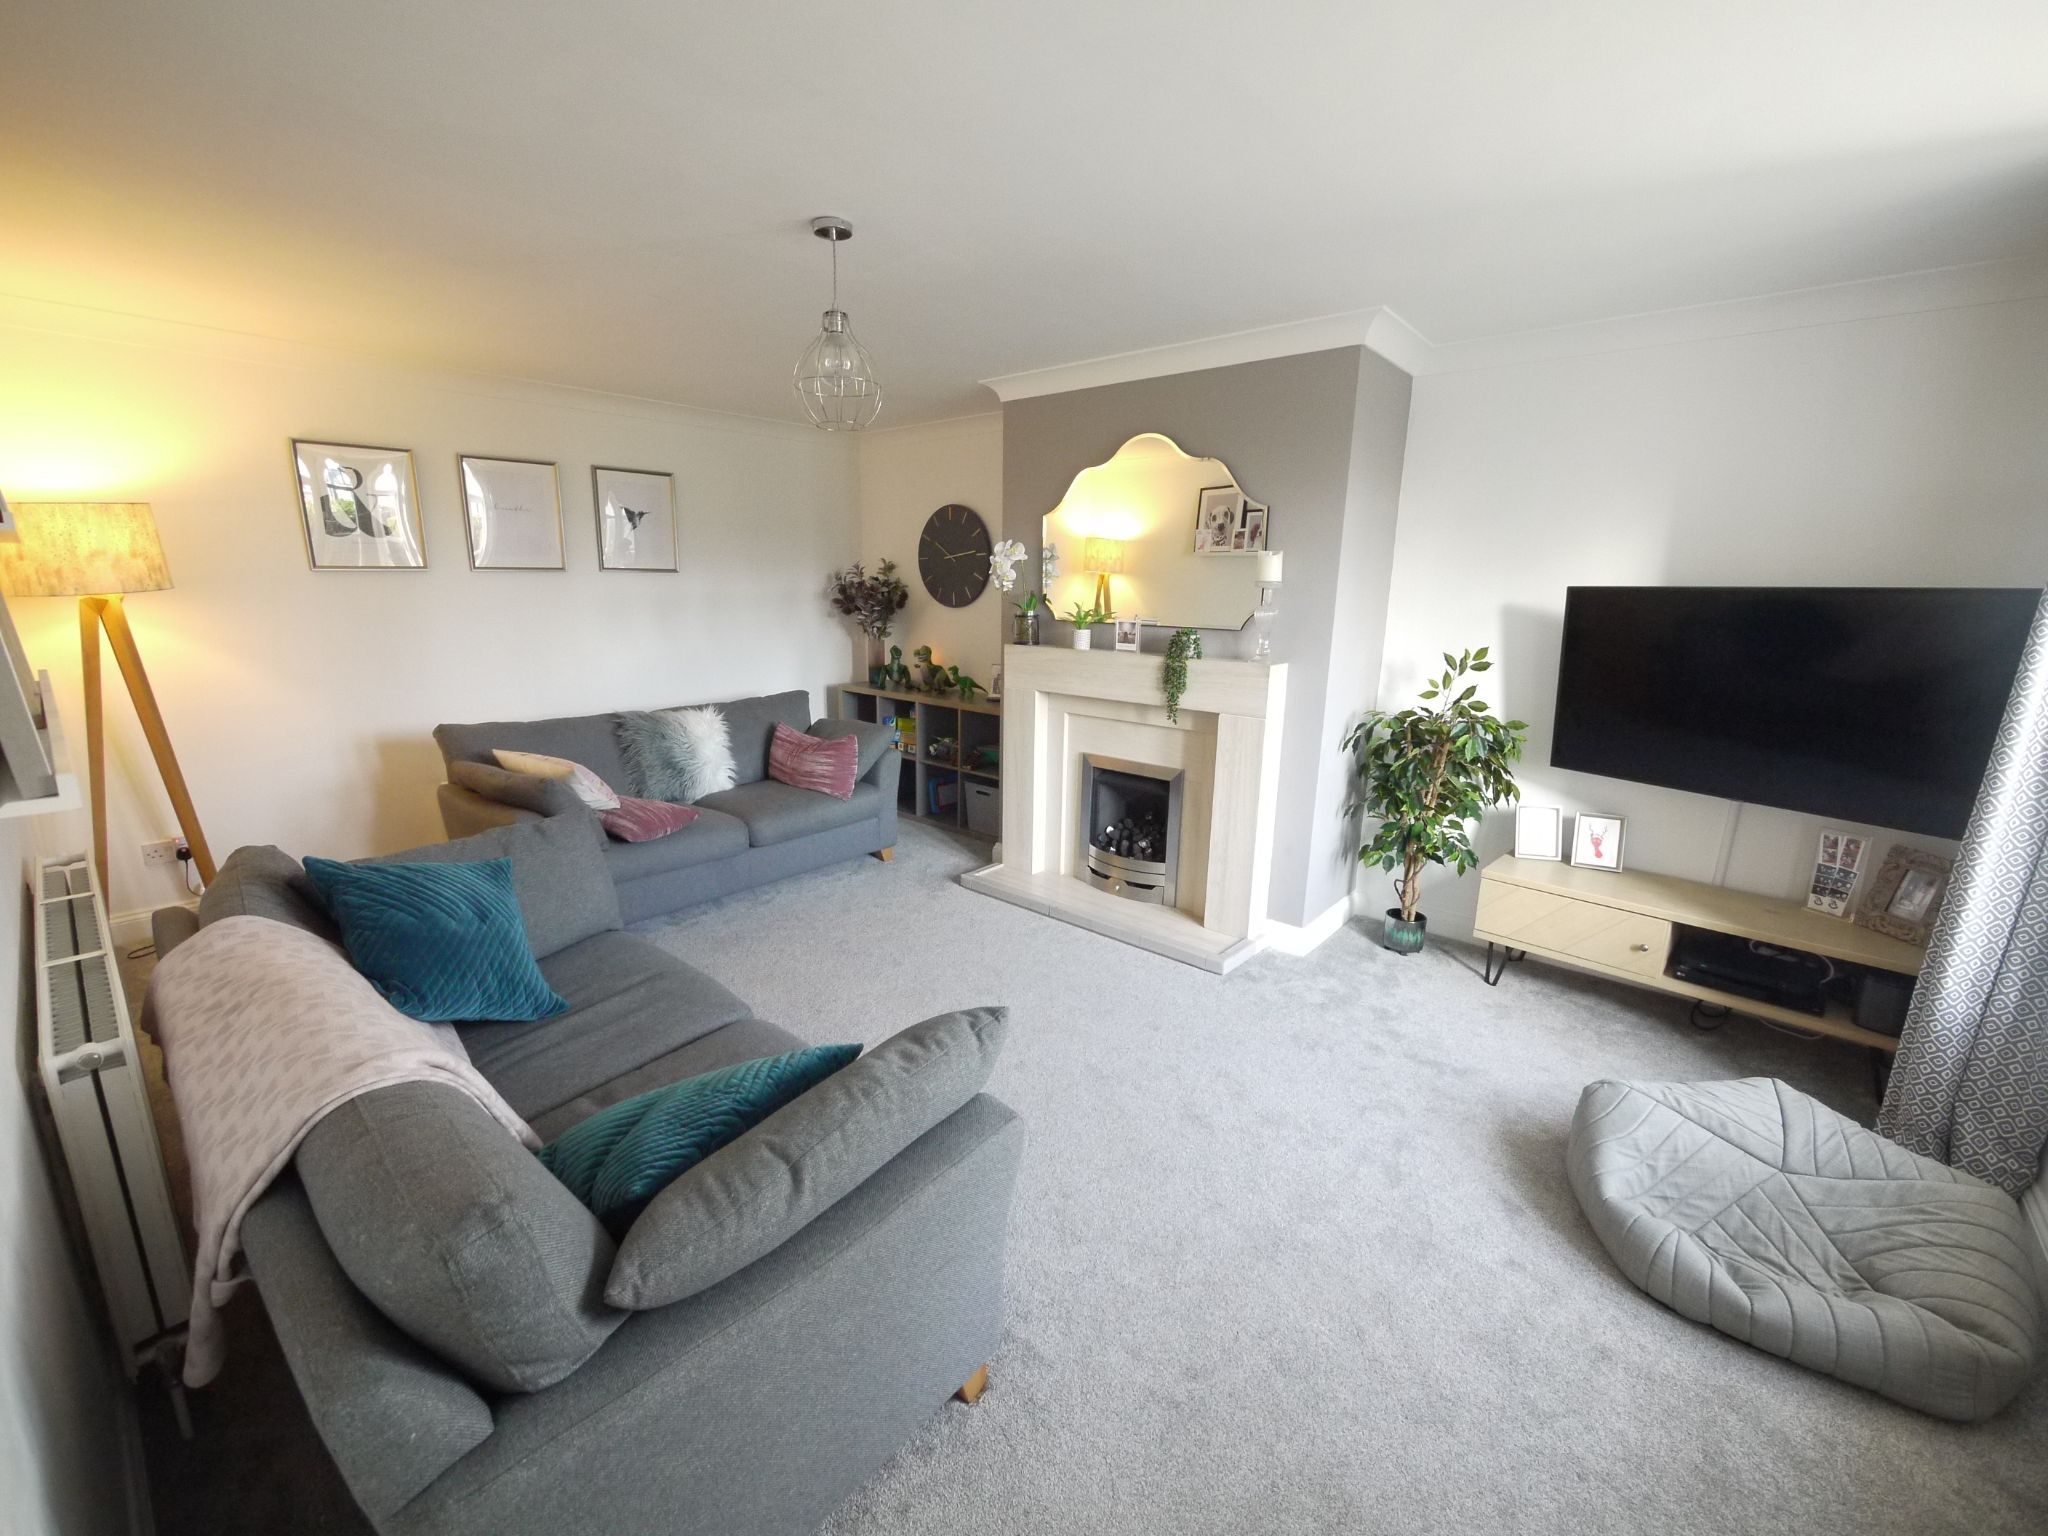 2 bedroom end terraced house SSTC in Cleckheaton - Lounge.